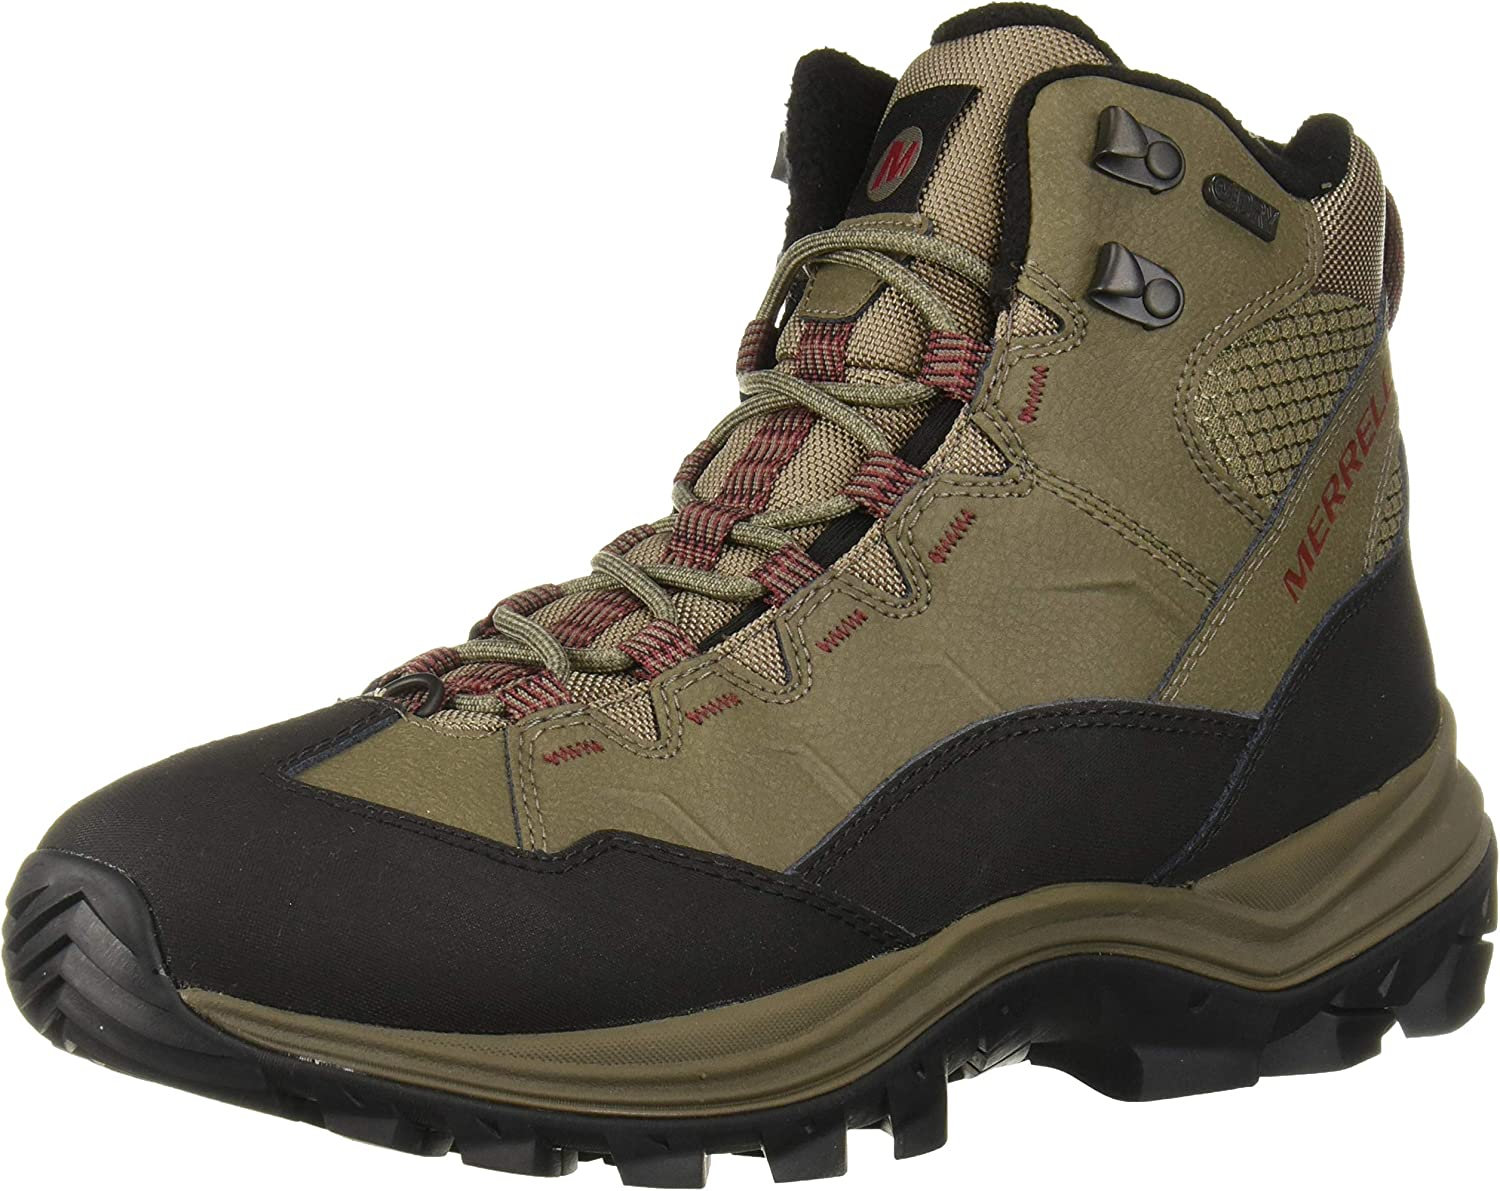 Max 83% OFF Merrell womens Thermo Wp Mid Chill New products, world's highest quality popular!